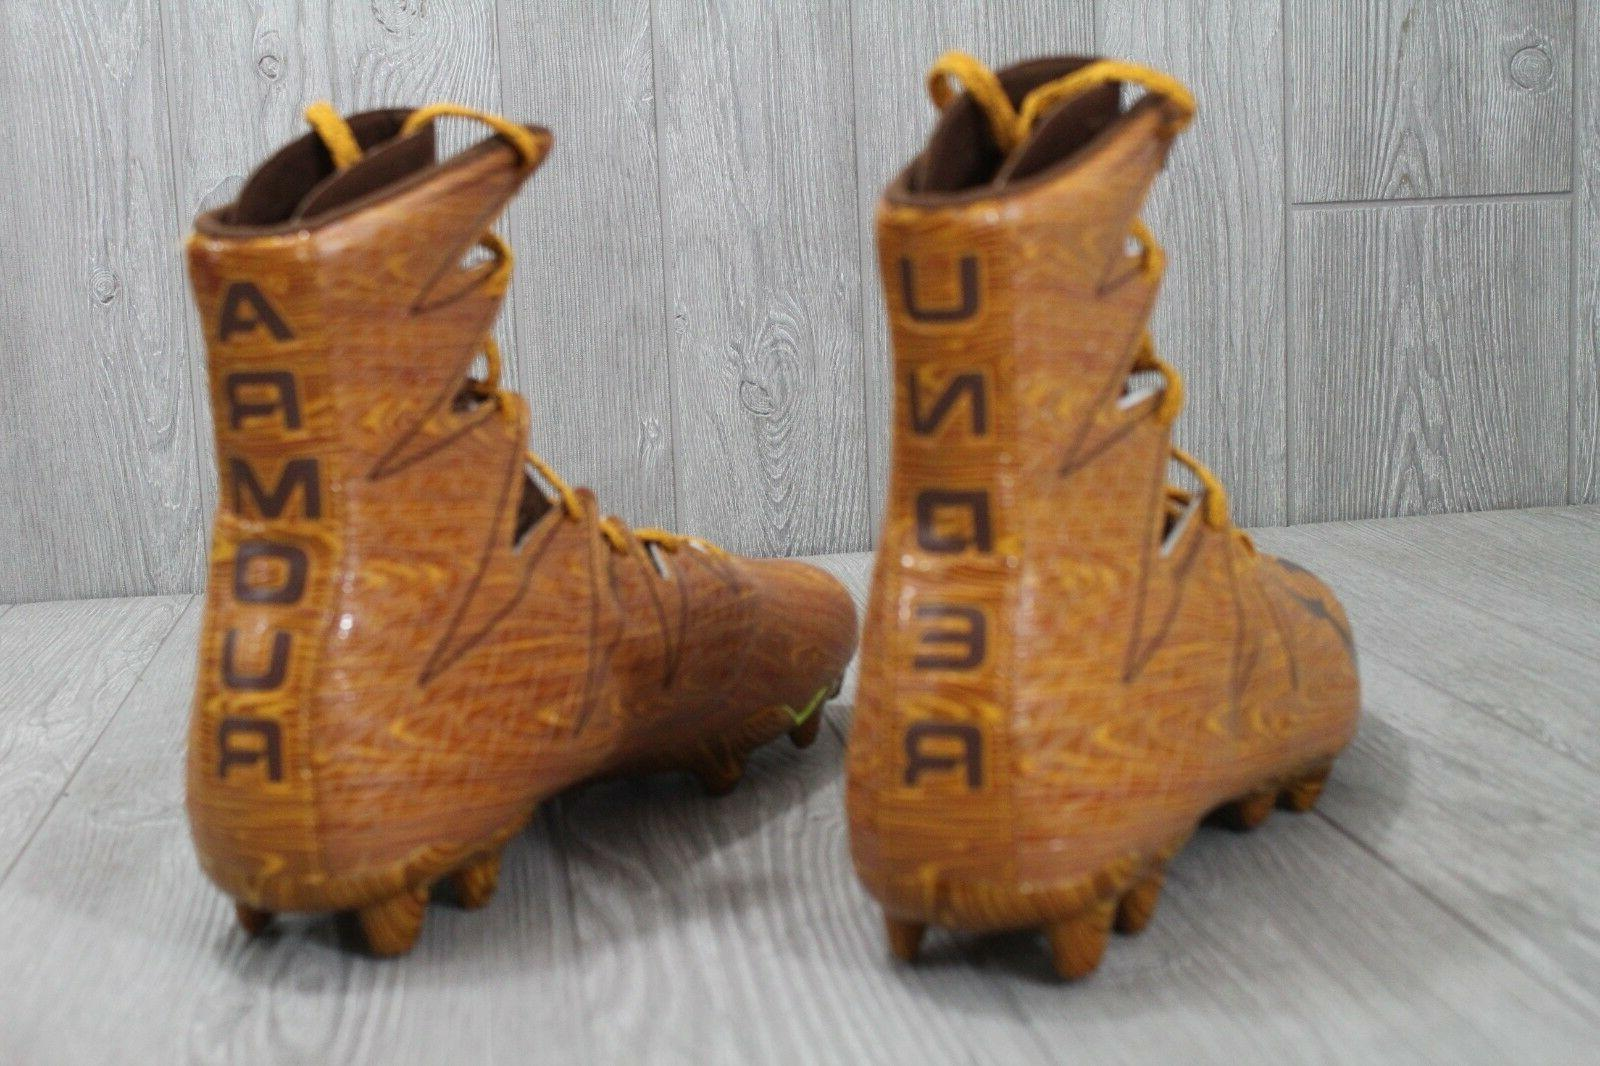 26 ARMOUR Highlight Wood Clutch Fit Molded Cleats 10.5-12